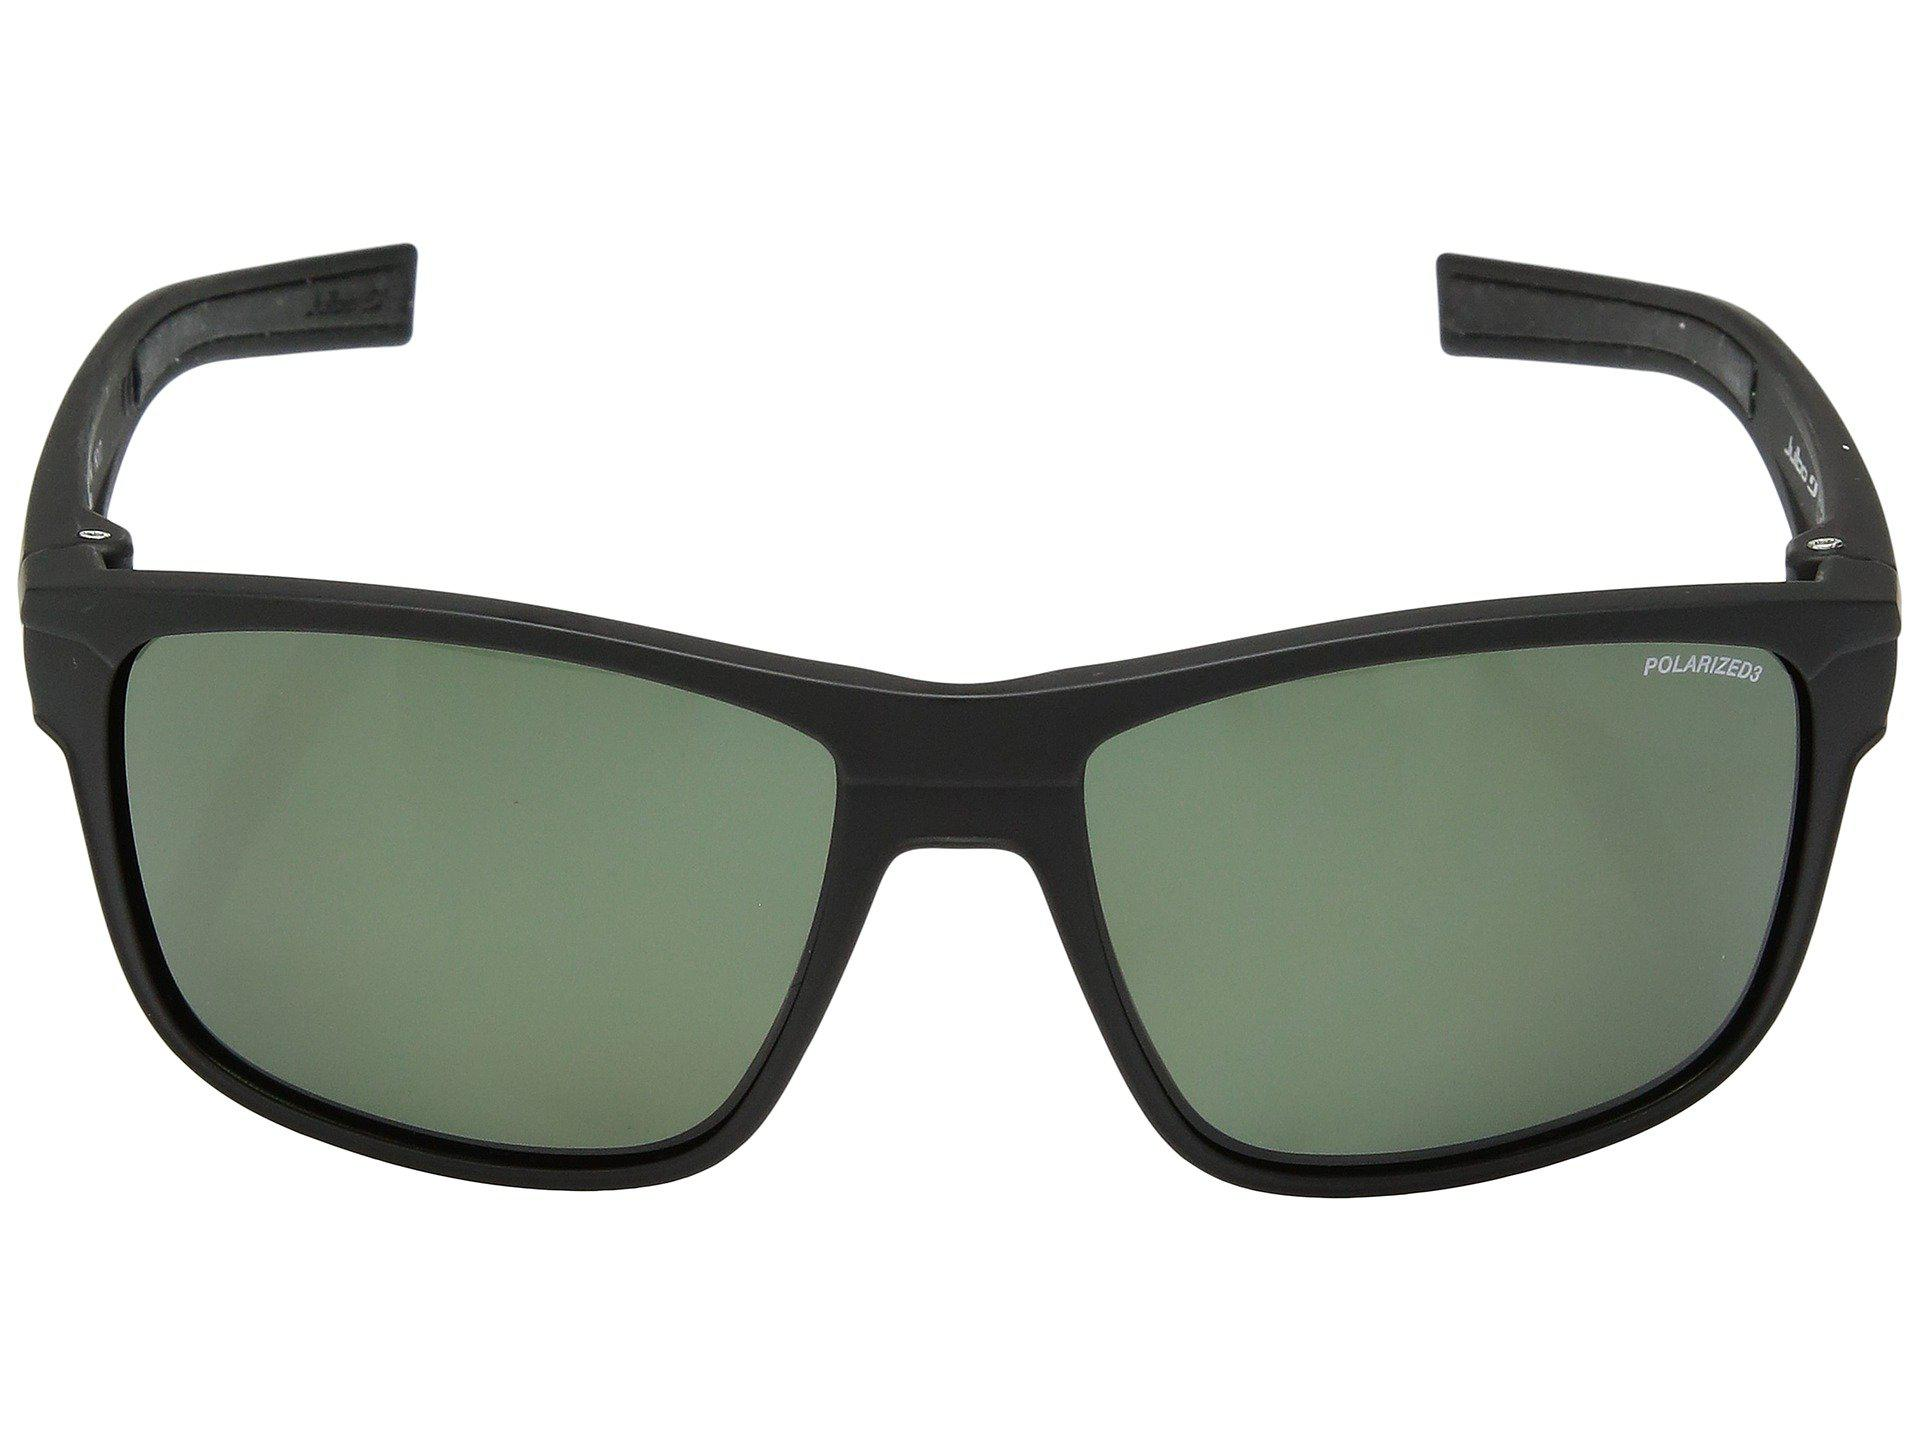 cd568c824b Julbo Eyewear - Renegade (matte Black black) Athletic Performance Sport  Sunglasses for Men. View fullscreen